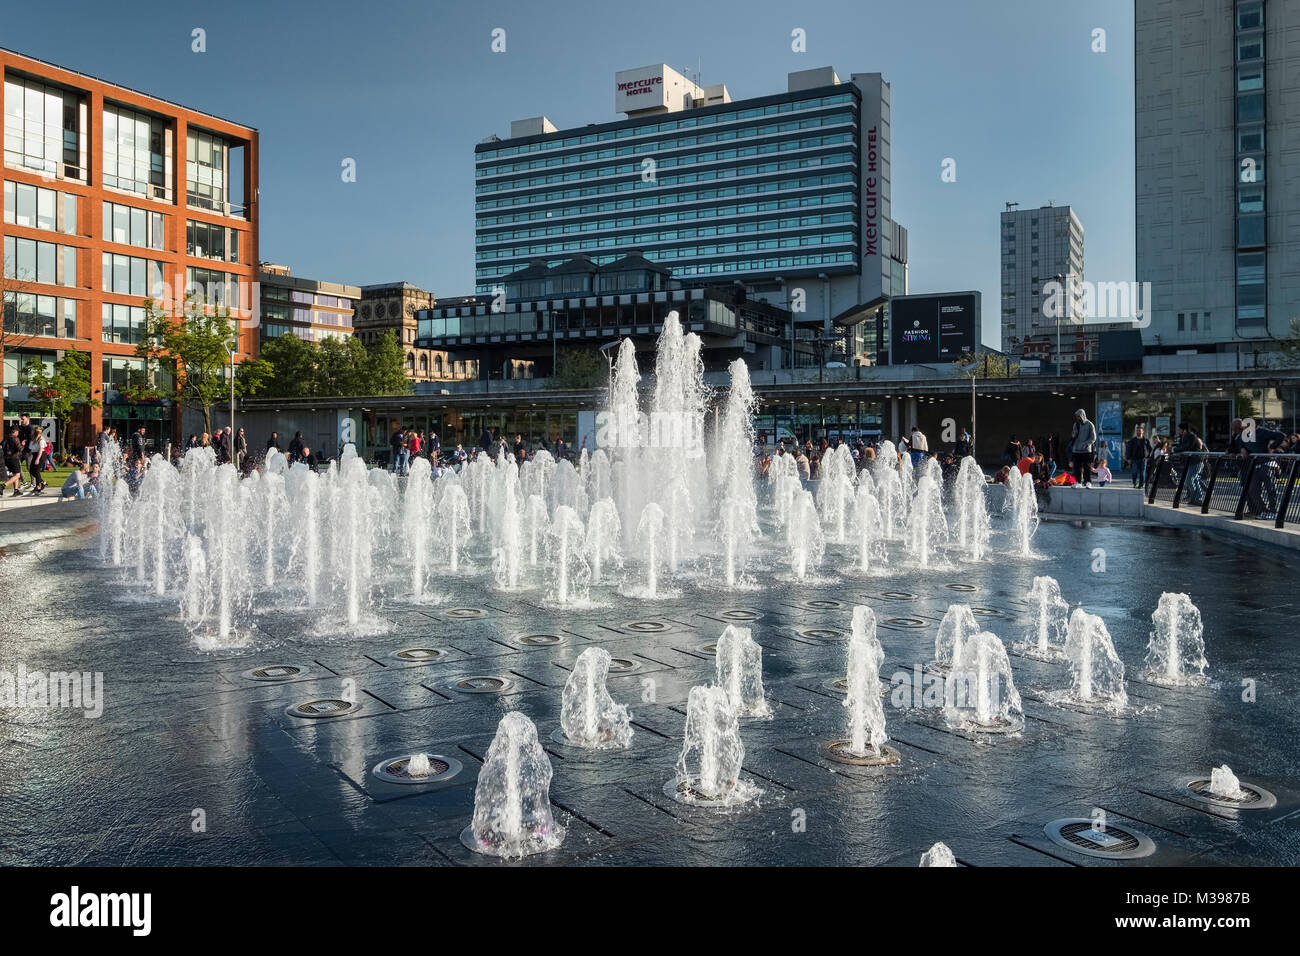 Fountain at Piccadilly Gardens, Manchester, Greater Manchester, England, UK - Stock Image